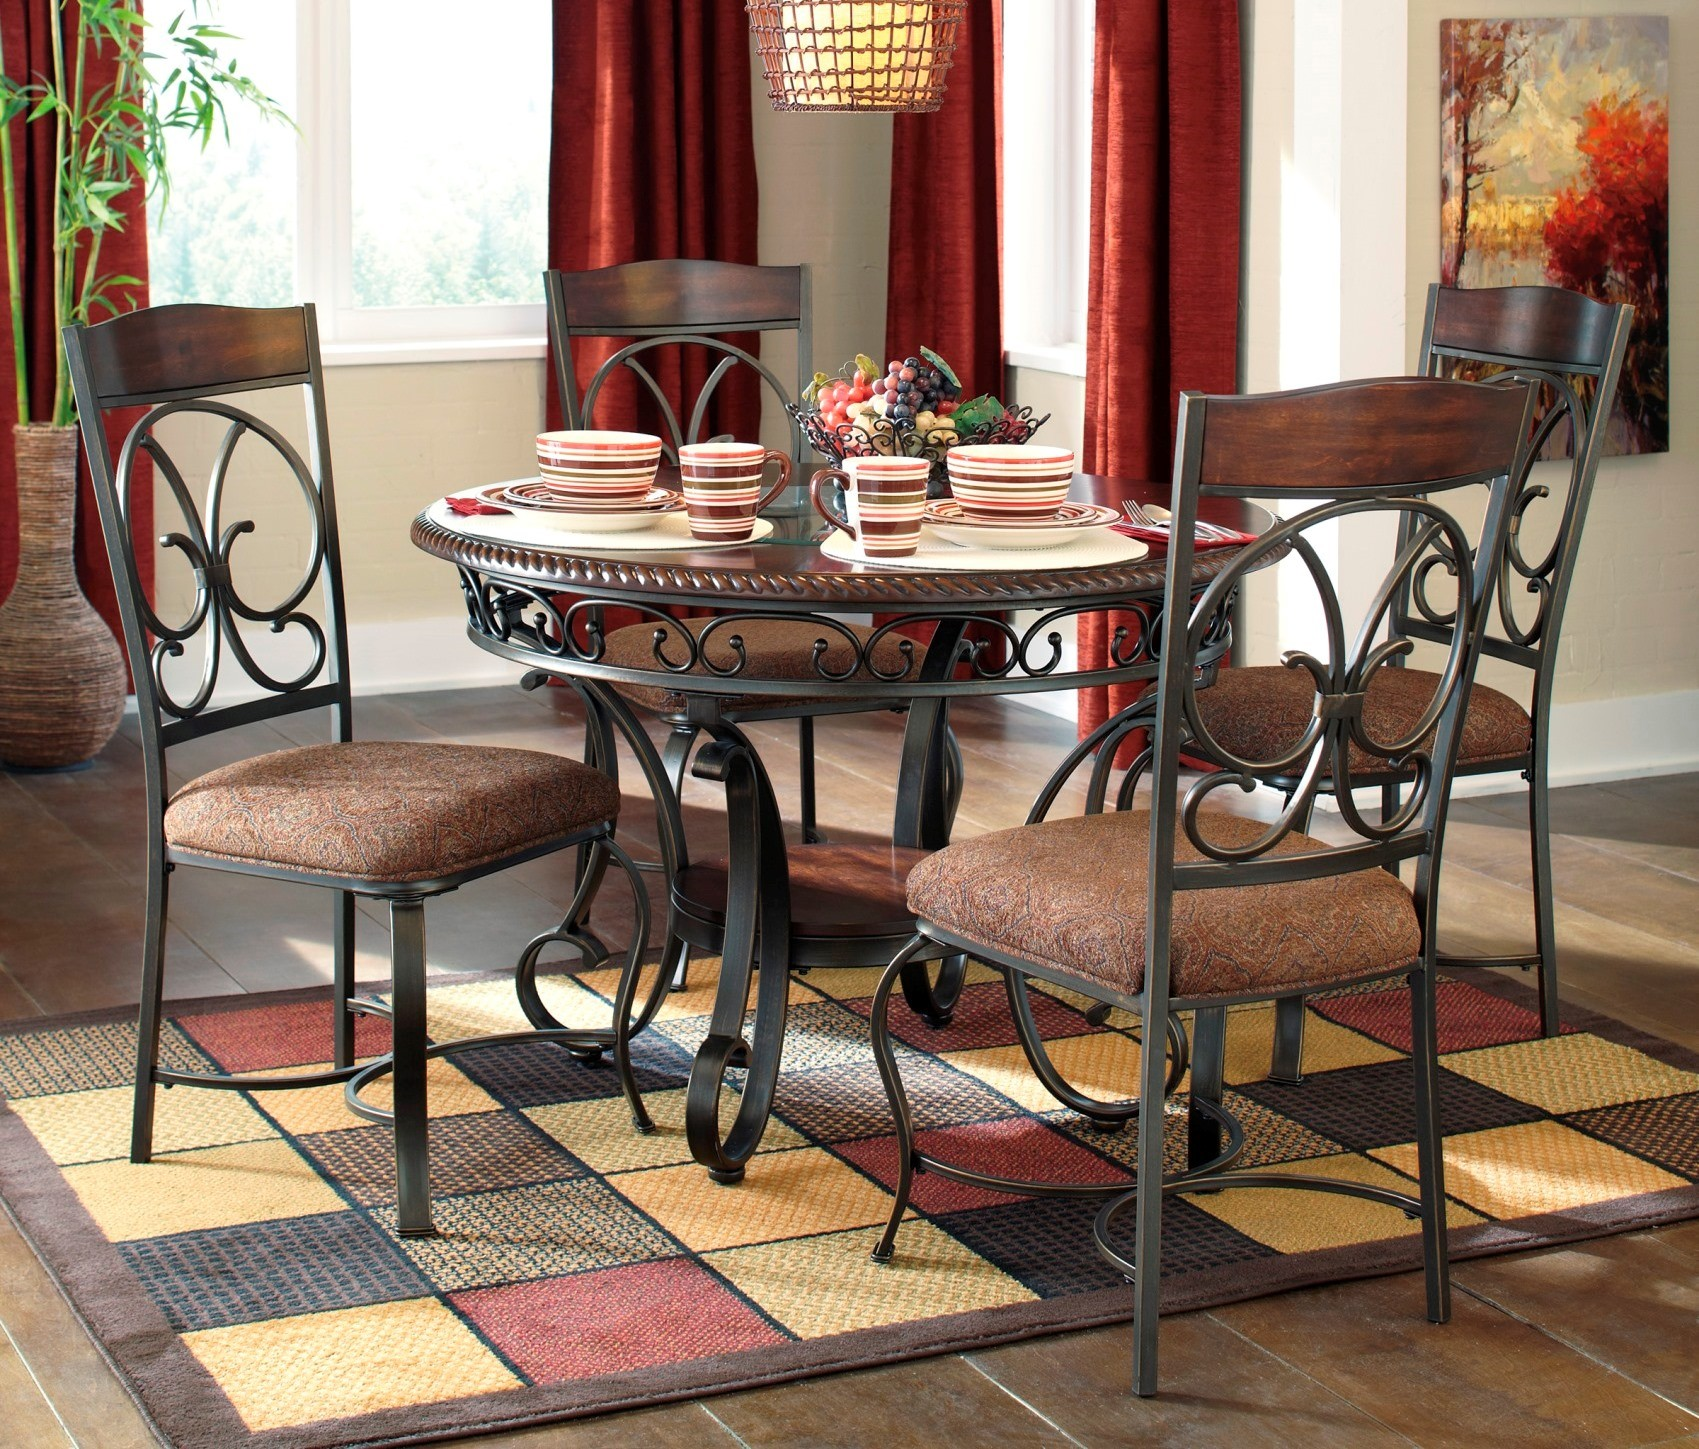 Dining Set Round: Glambrey Round Dining Room Set From Ashley (D329-15